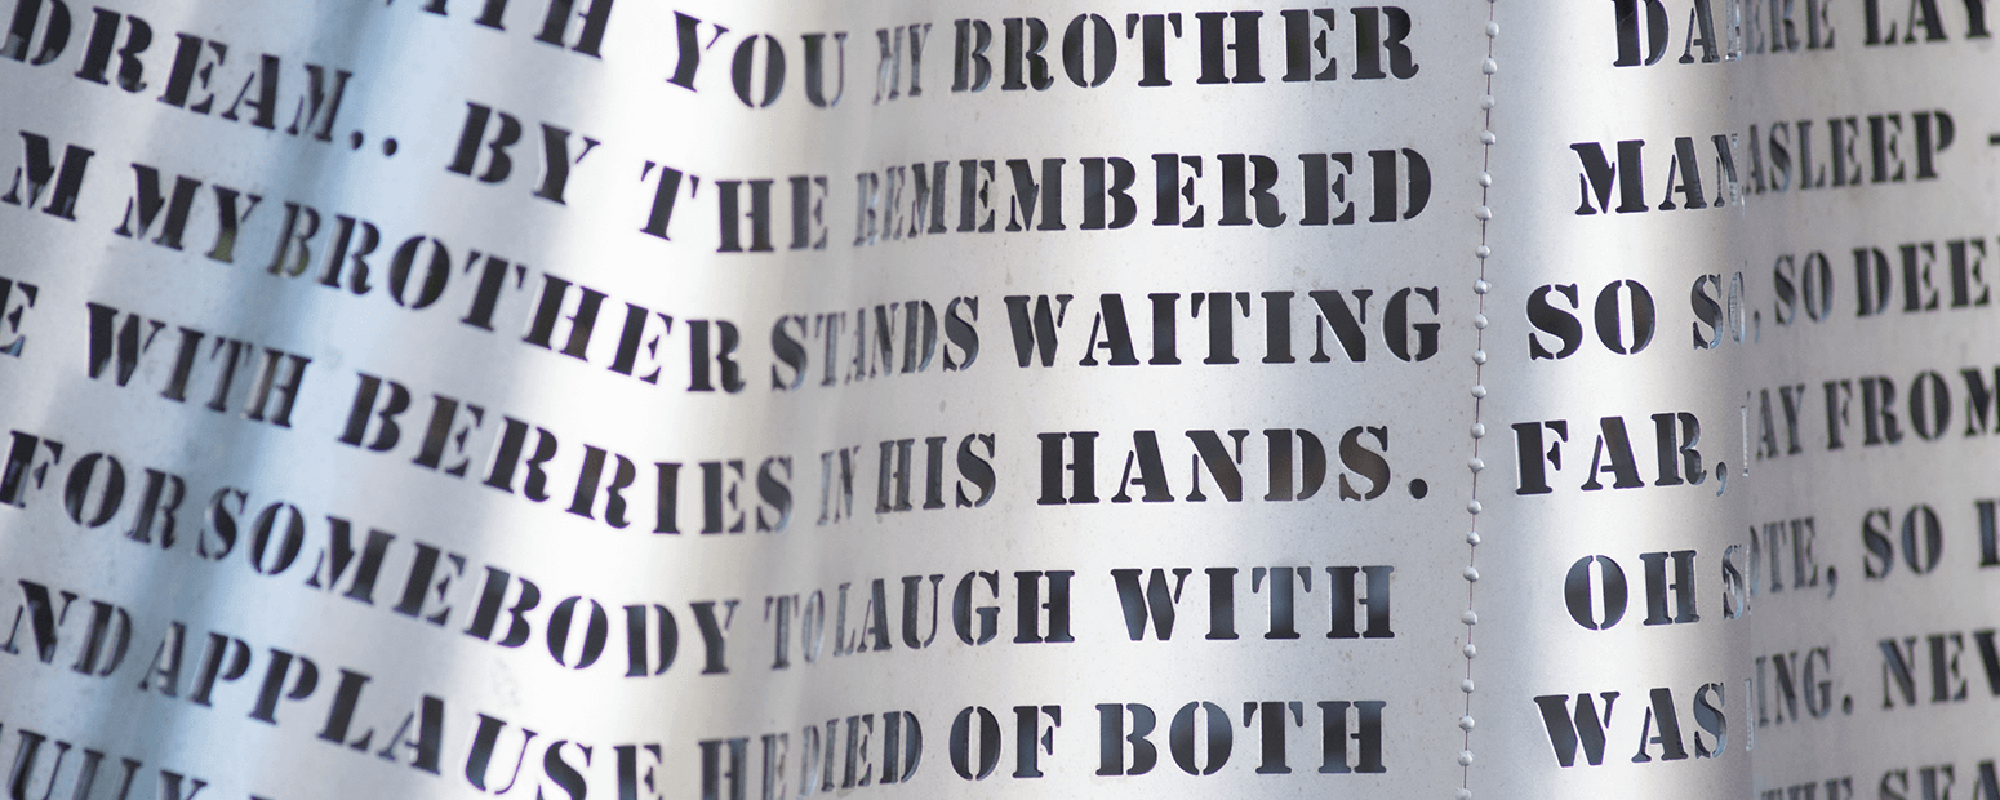 An image of a stainless steel sculpture with many sentances mad up of letters that have been cut out of the steel.